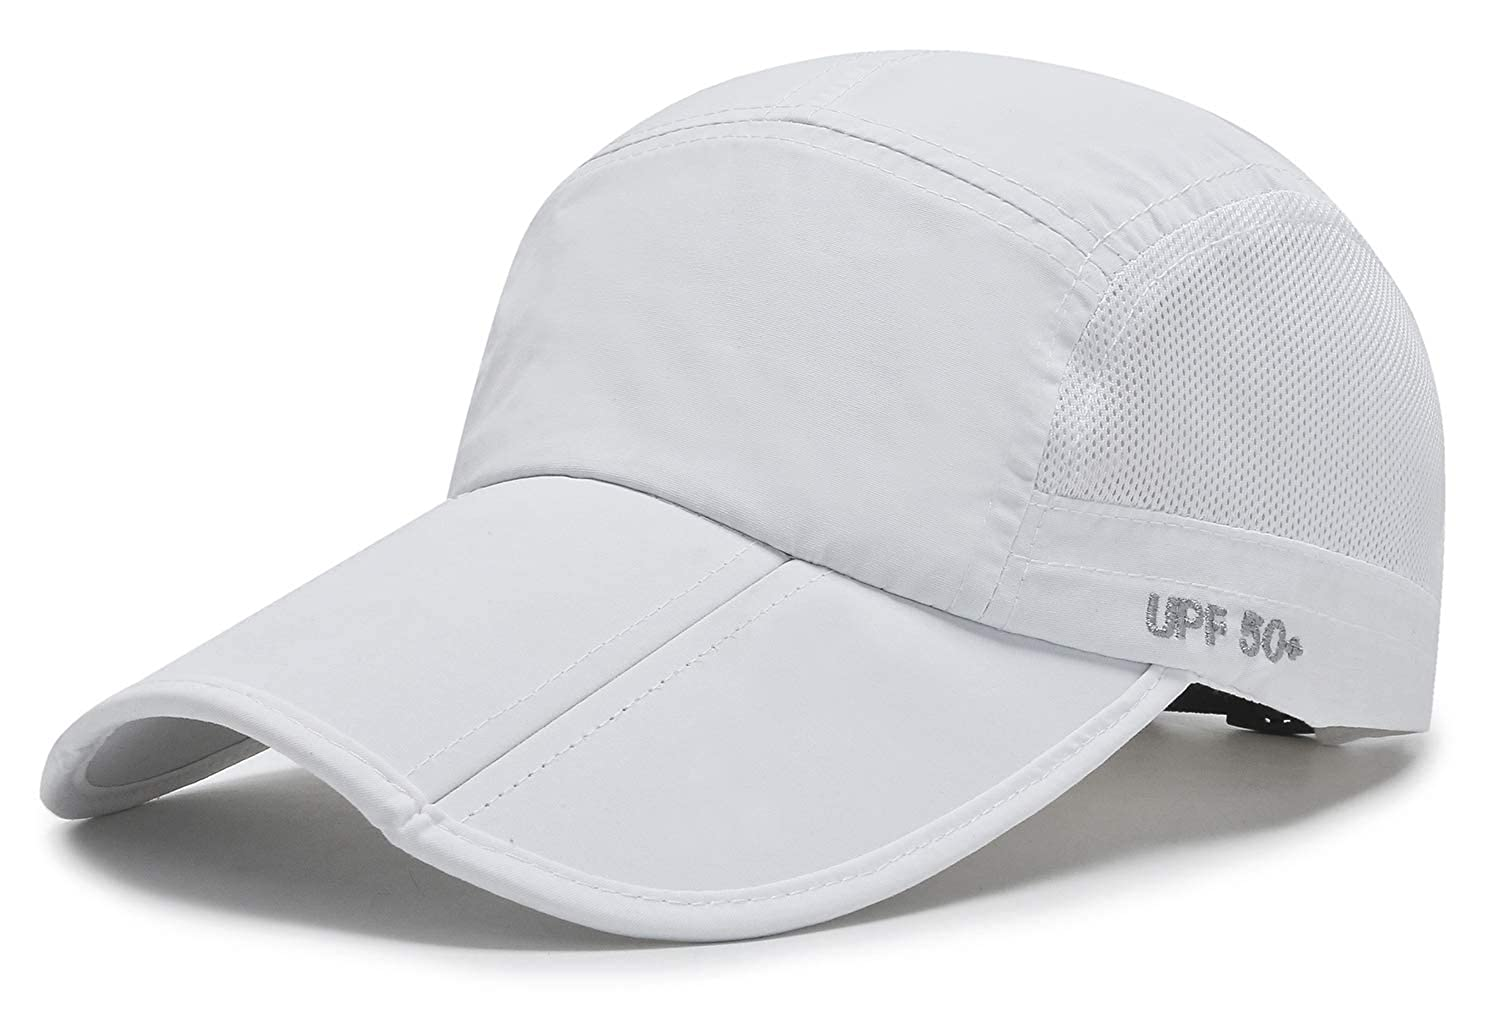 ELLEWIN Unisex Baseball Cap UPF 50 Unstructured Hat with Foldable Long Large Bill